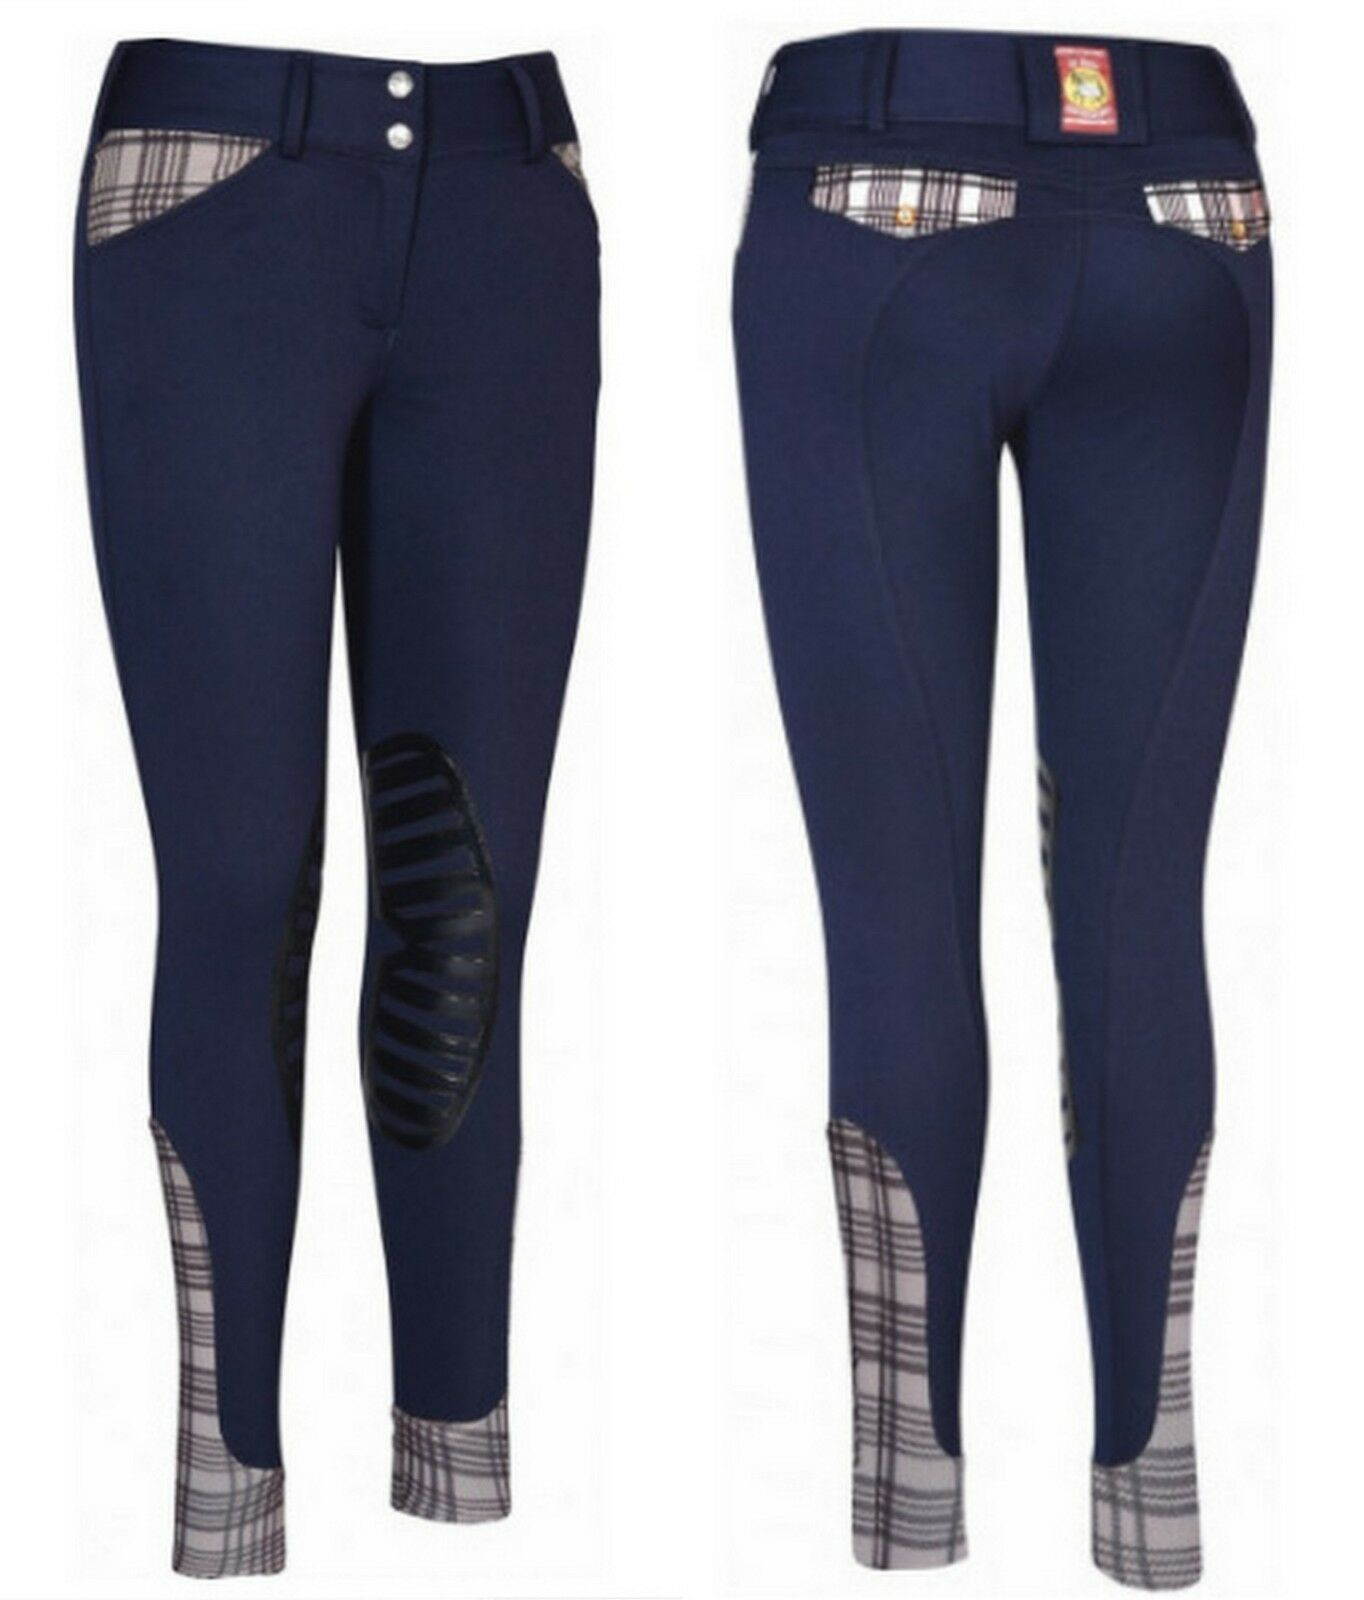 Baker Ladies Pro Silicone Knee Patch Breeches Navy Size 24 26 or 32